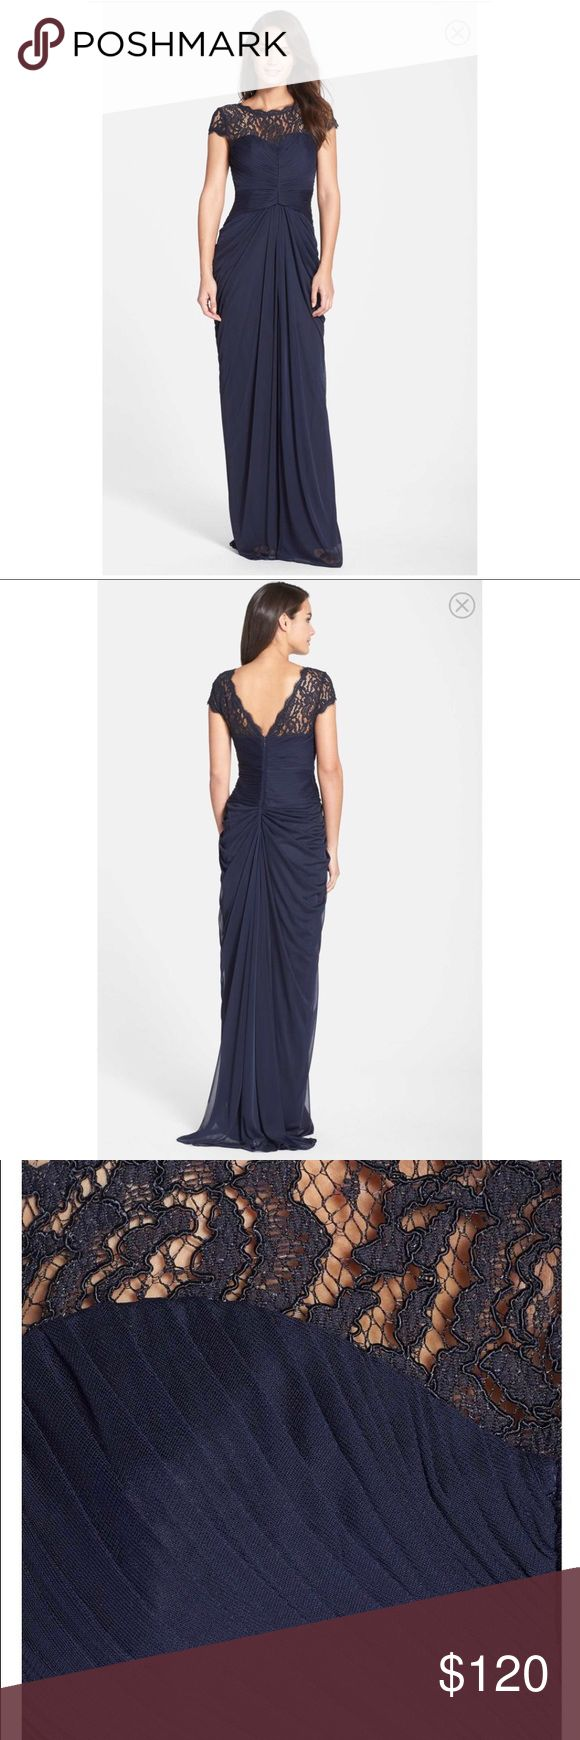 """Adrianna Papell Lace Yolk Drape Gown Color: Ink (dark blue). I'm 5'1 / 135 lbs / 34C. The size 4 is very generous. With 3"""" heels, the dress is still too long so I'd recommend this dress for someone really tall unless you want to get it tailored. It definitely does a great job at slimming the waistline. 😜 OFFERS considered. Adrianna Papell Dresses Wedding"""